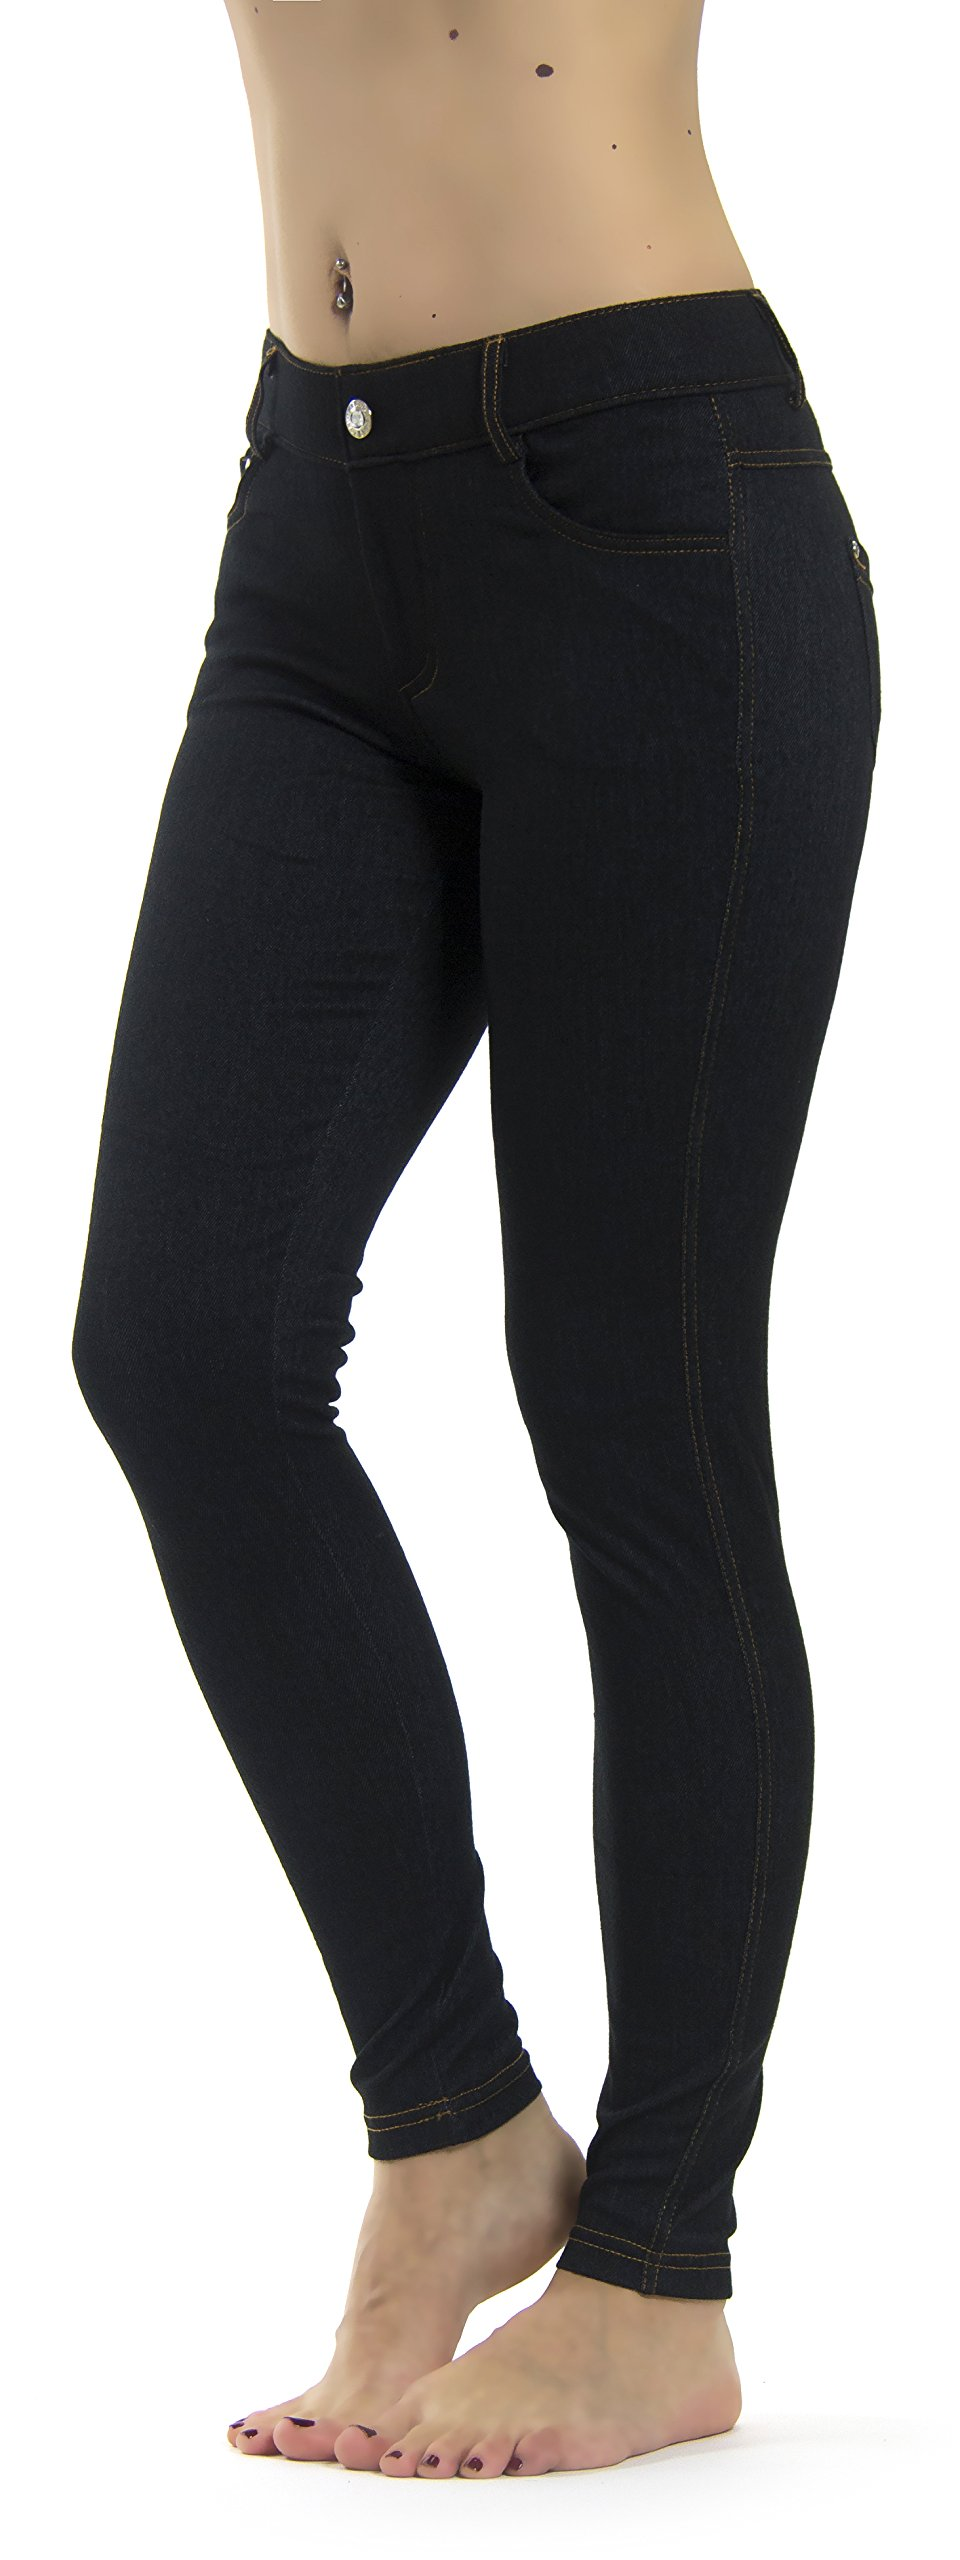 Prolific Health Women's Jean Look Jeggings Tights Slimming Many Colors Spandex Leggings Pants S-XXXL (Large/X-Large, Black Denim) by Prolific Health (Image #3)